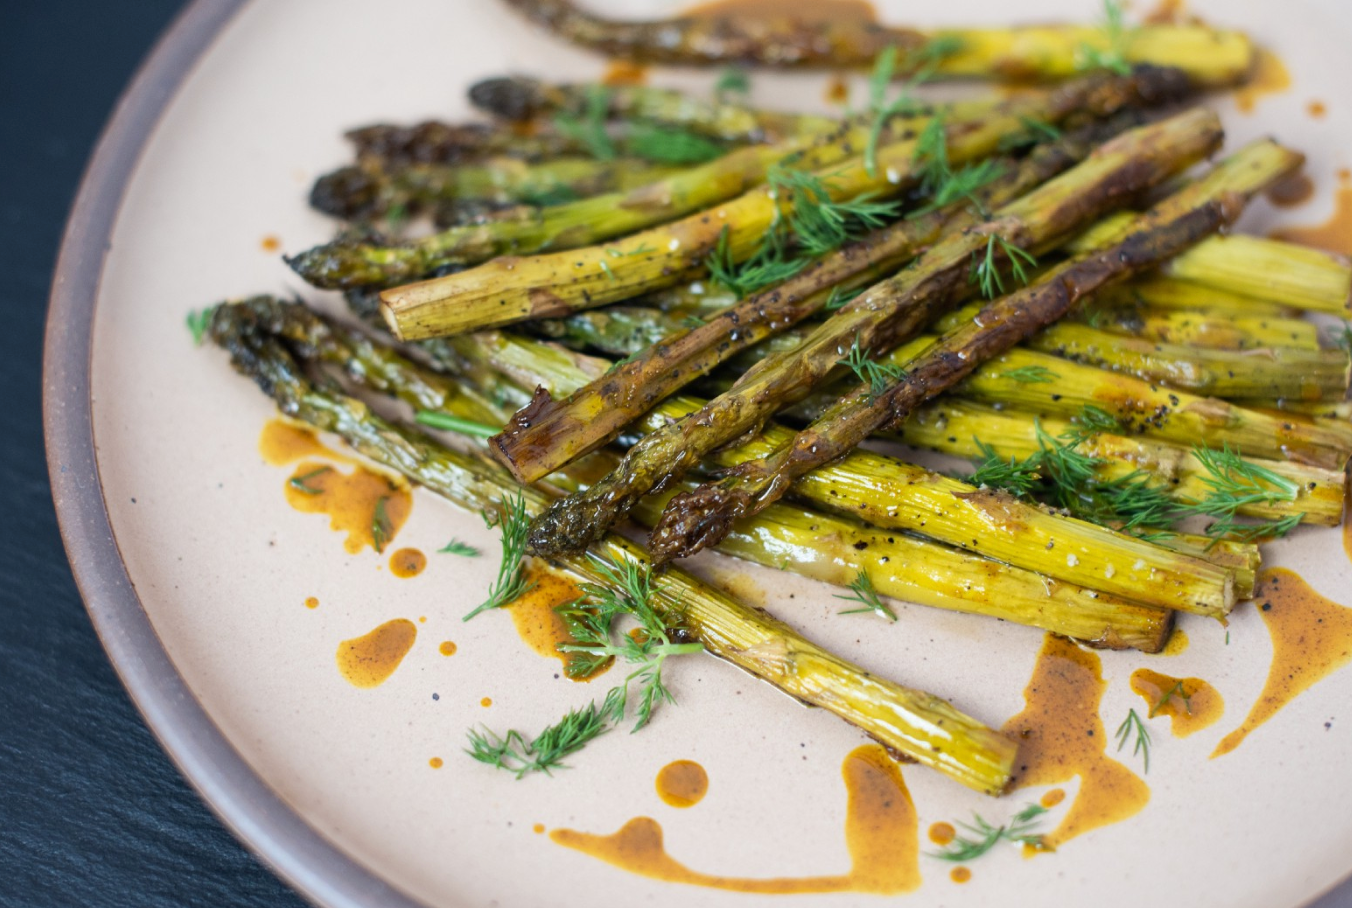 CBD Superfood Roasted Asparagus & Golden Spice Drizzle